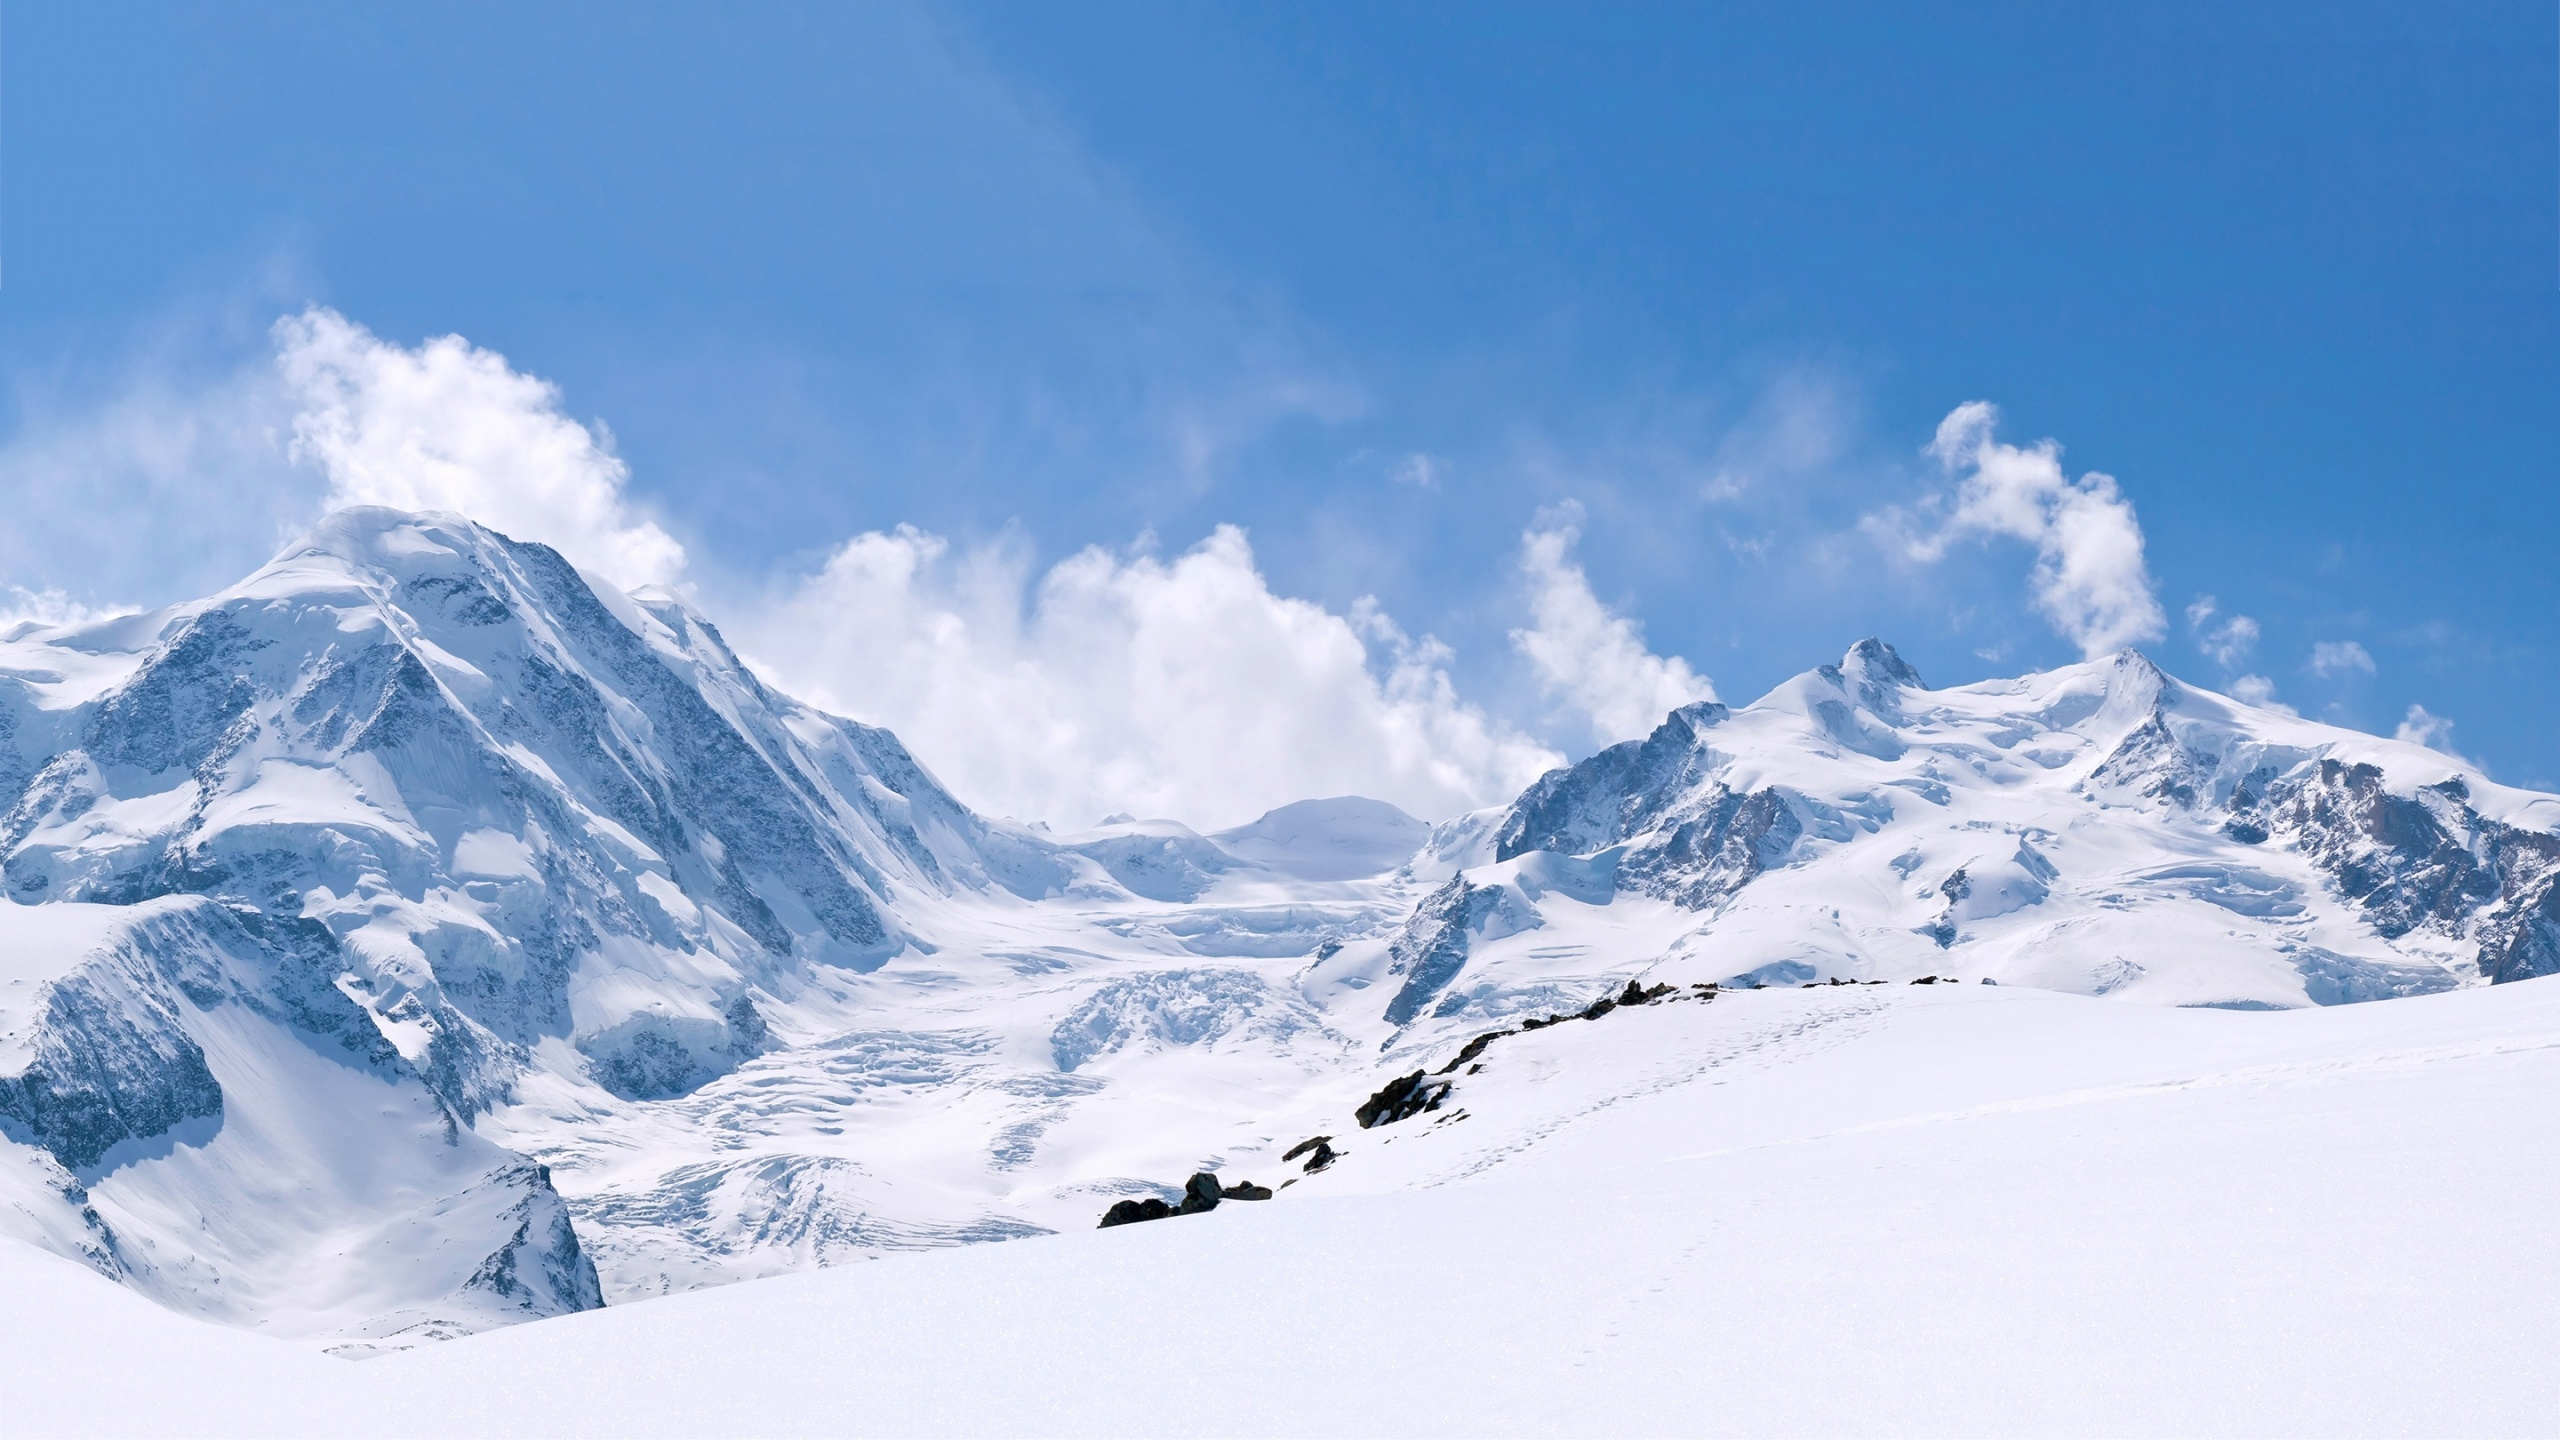 Mountain And Winter Wallpapers HD 2560x1440